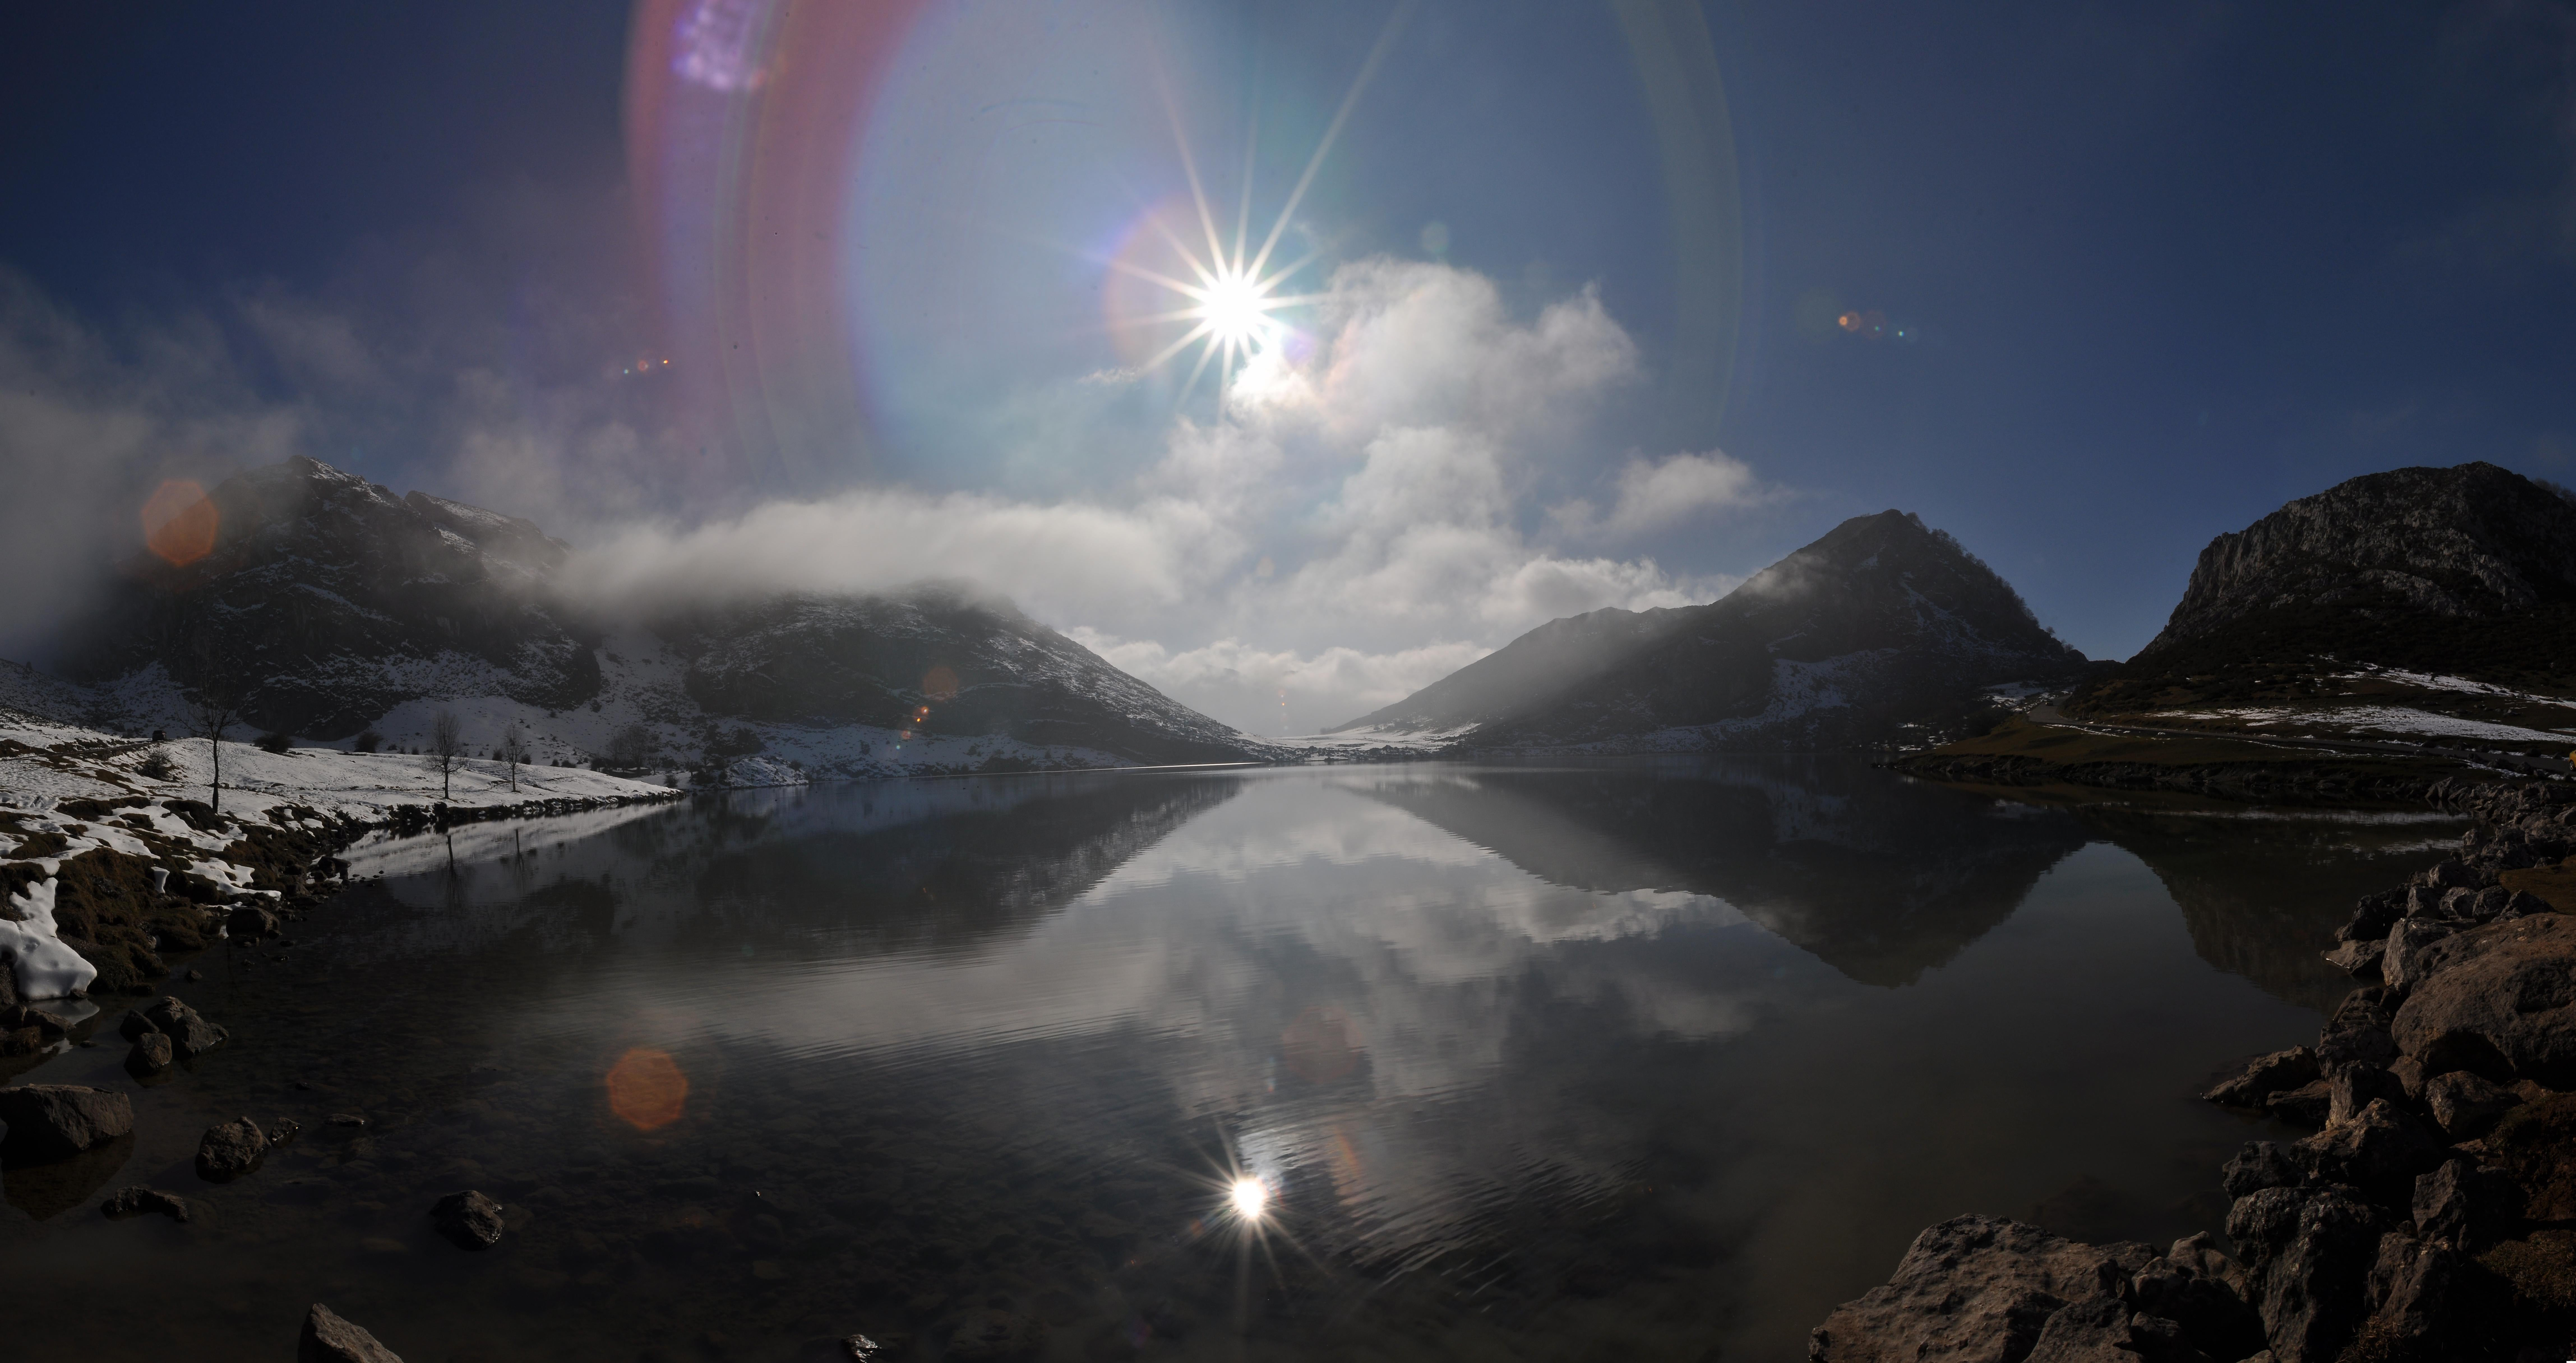 Reflection in The Lakes of Covadonga - Enol and Ercina lakes